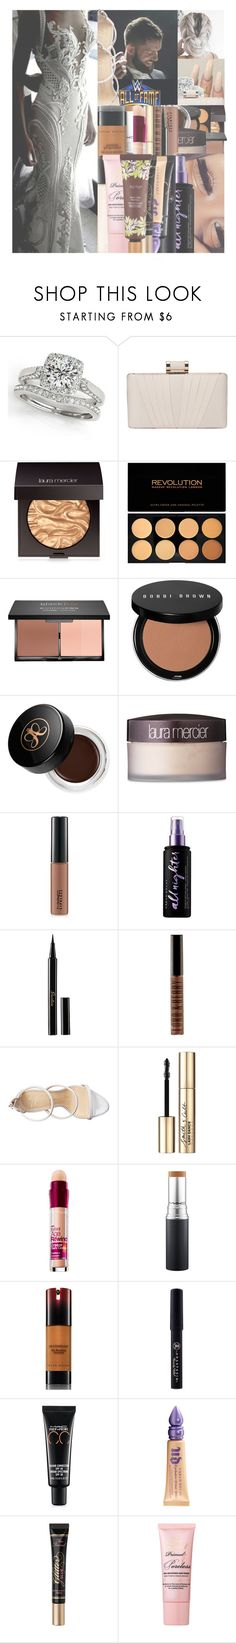 """""""WWE: H A L L  O F  F A M E"""" by w-on-der-lan-d ❤ liked on Polyvore featuring Floss Gloss, Allurez, Phase Eight, Laura Mercier, Sephora Collection, GET LOST, Bobbi Brown Cosmetics, Anastasia Beverly Hills, WWE and MAC Cosmetics"""